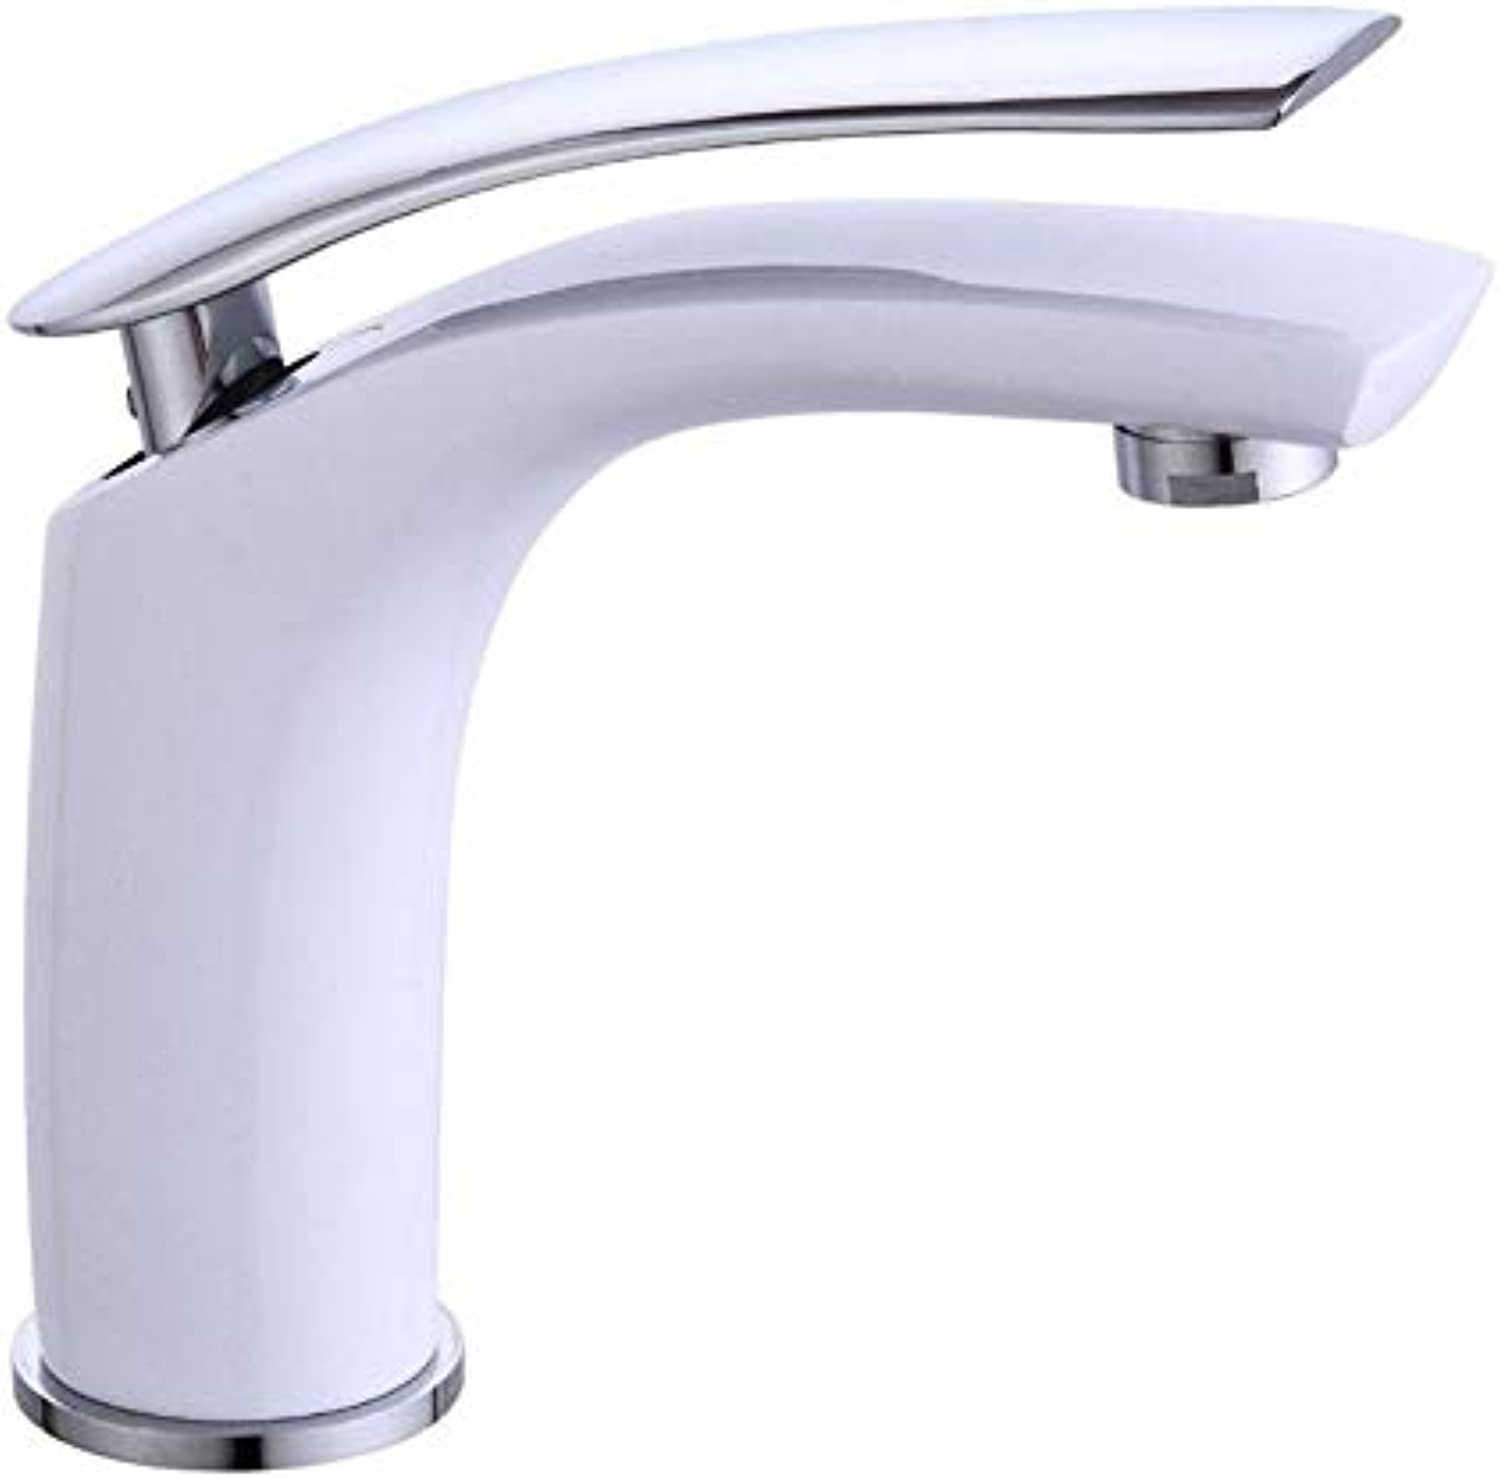 Bathroom Faucet Faucet Water Saving Bathroom Home Application Abs Pure Copper Cold and Hot Removable Taps